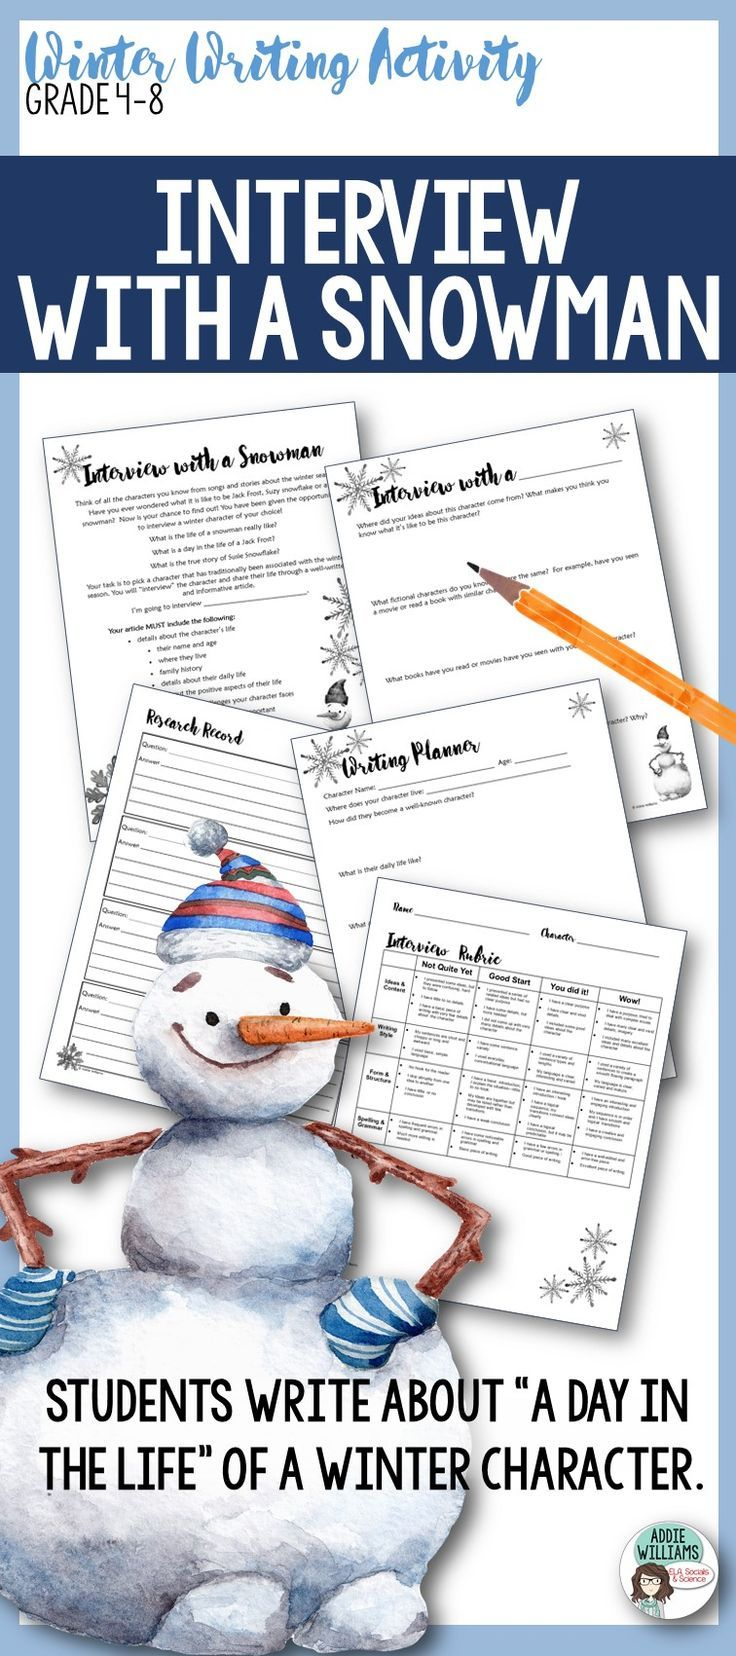 Winter Writing Activity - ask your students to imagine a day in the life of a winter character! Fun and engaging writing resource!